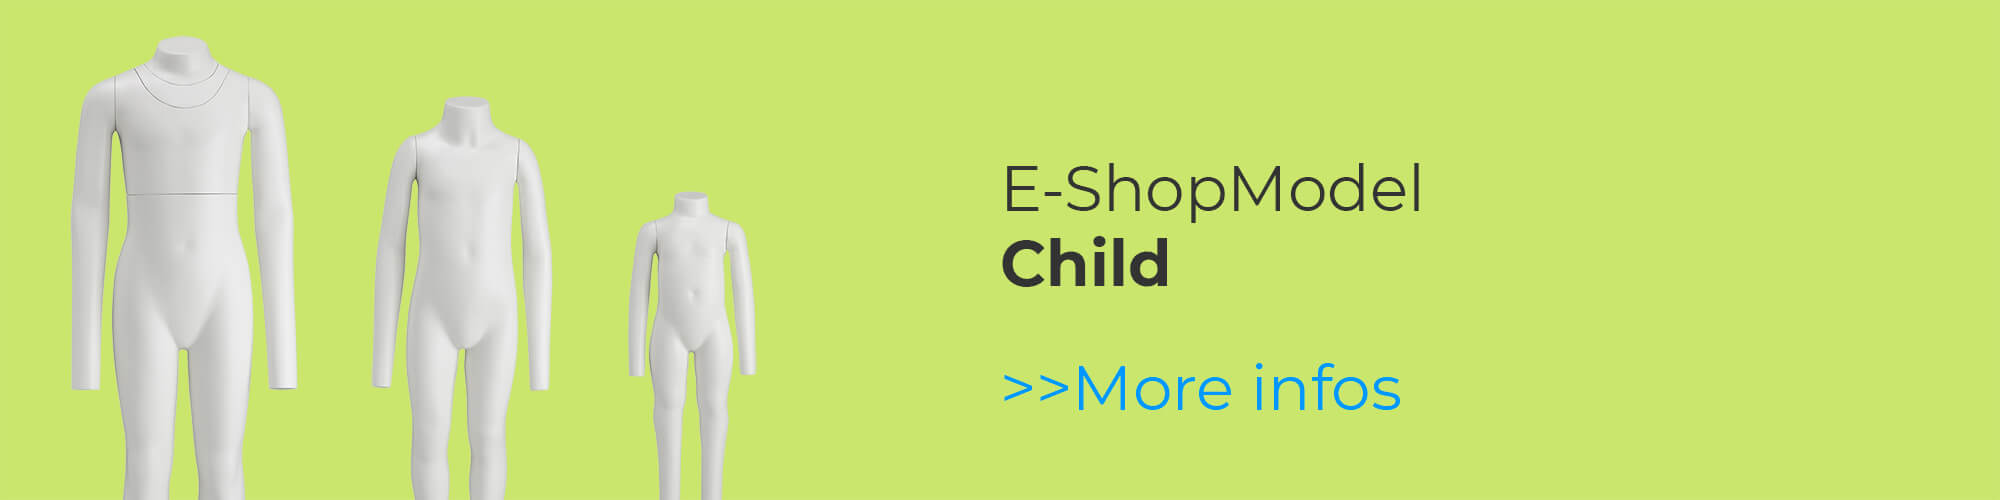 E-ShopModels Child